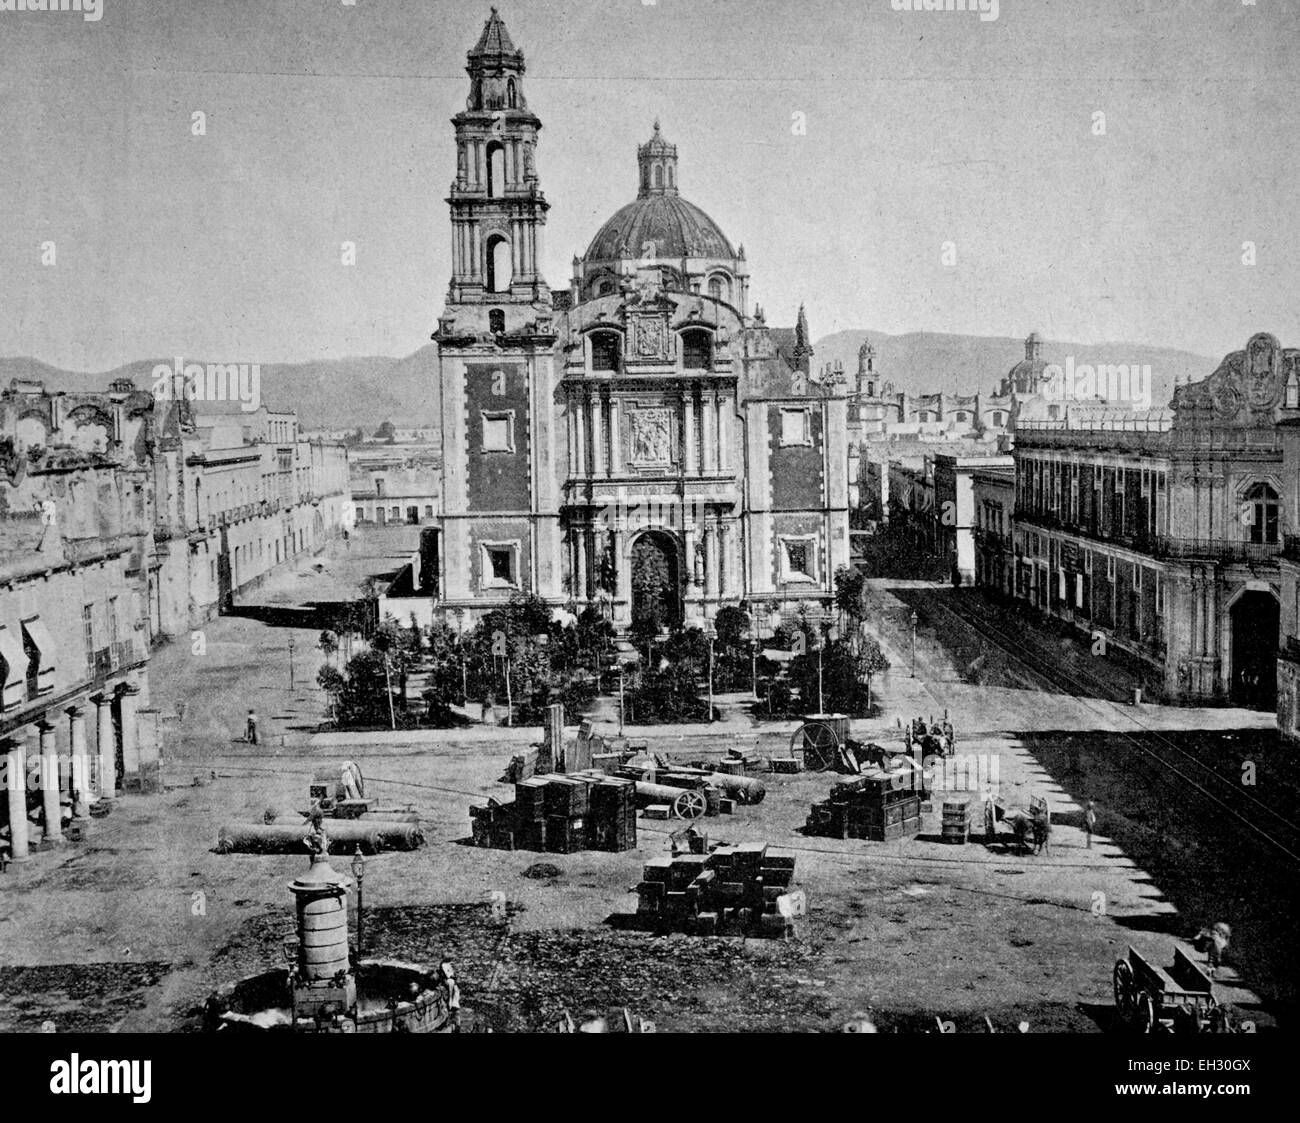 Early autotype of Santo Domingo square in Mexico City, Mexico, America, 1880 - Stock Image